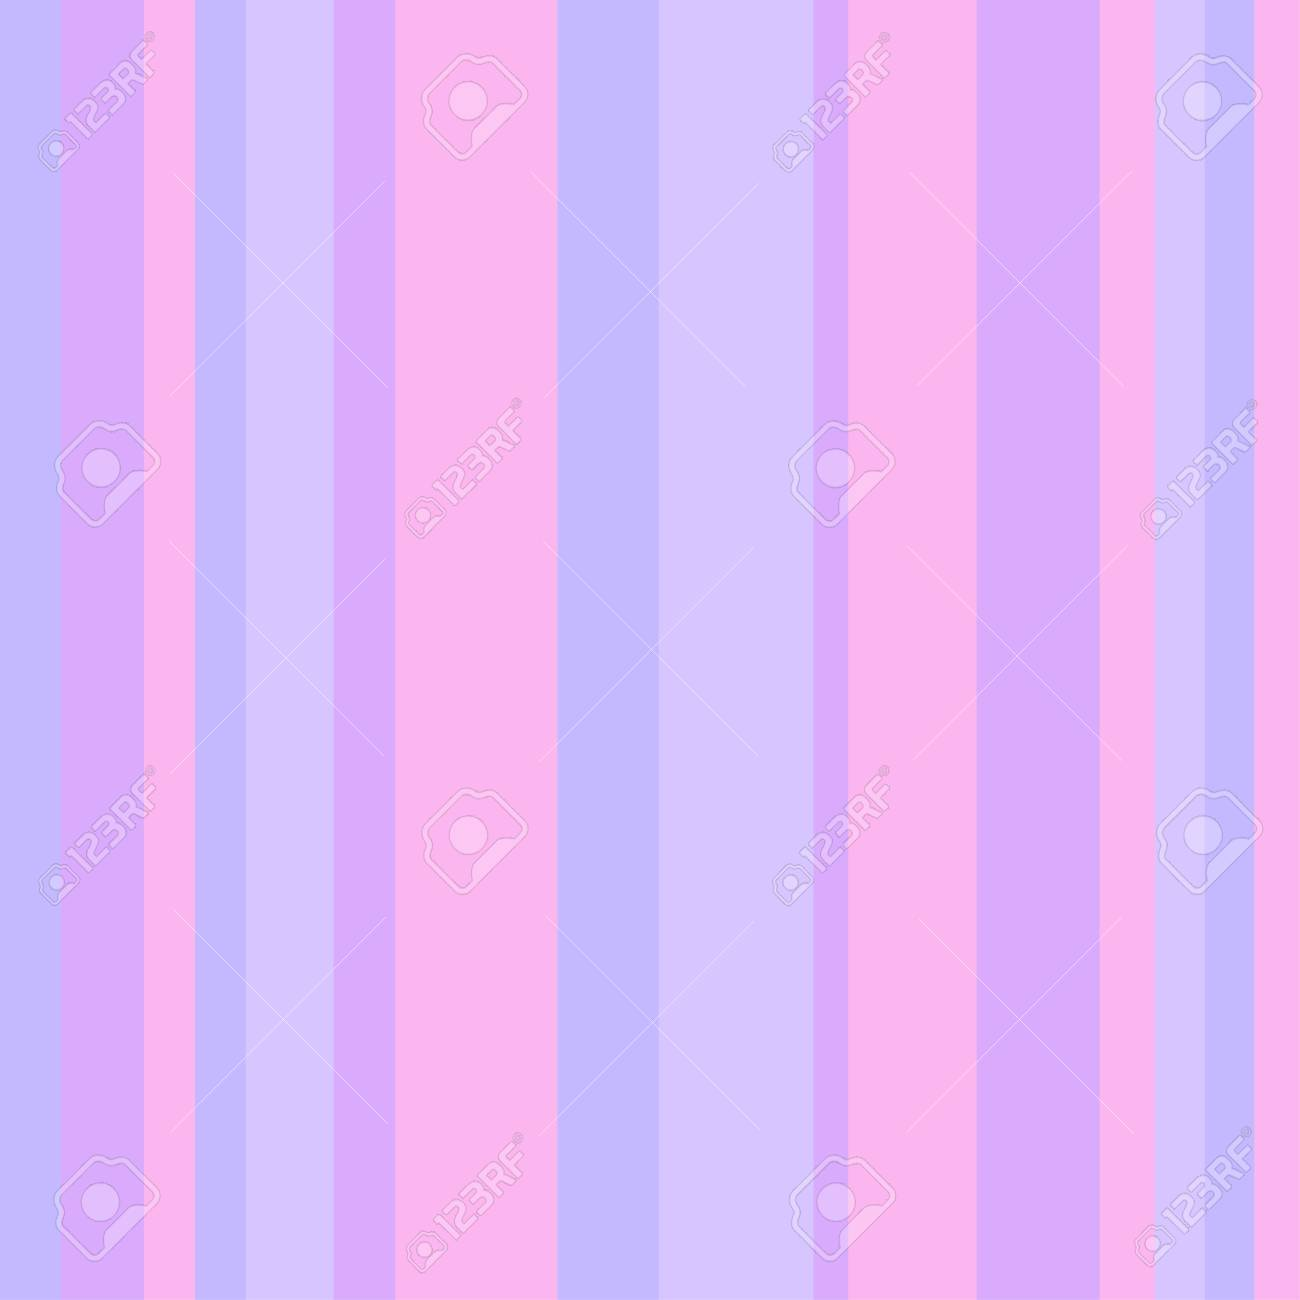 striped pattern with stylish and bright colors pink blue and royalty free cliparts vectors and stock illustration image 88678864 striped pattern with stylish and bright colors pink blue and